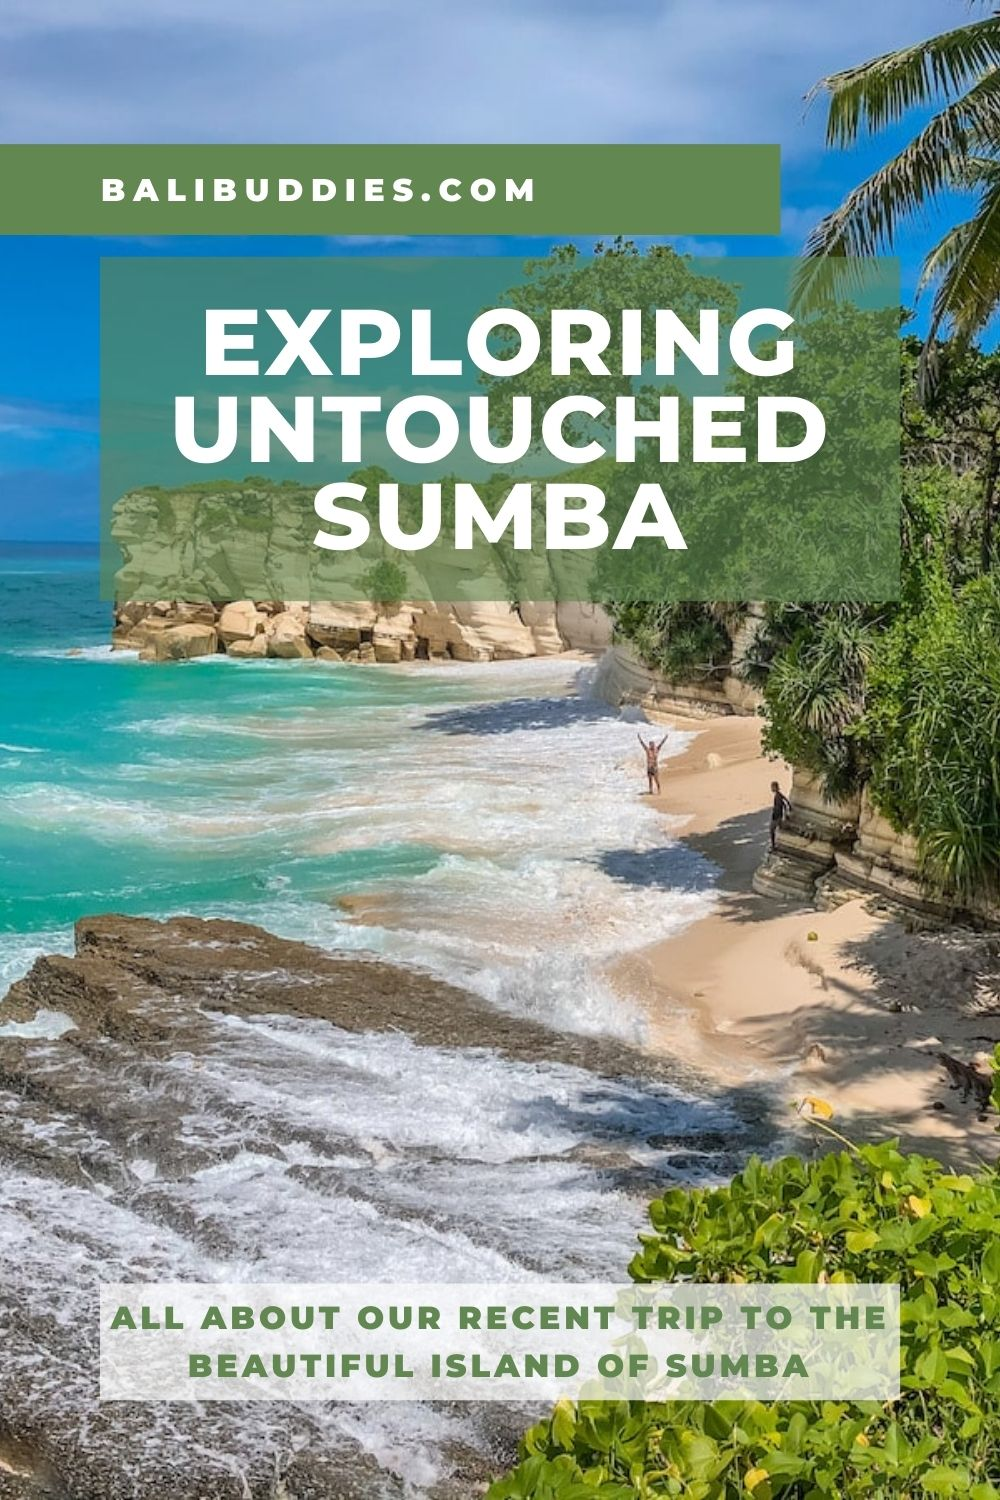 View of a beach in Sumba, Indonesia